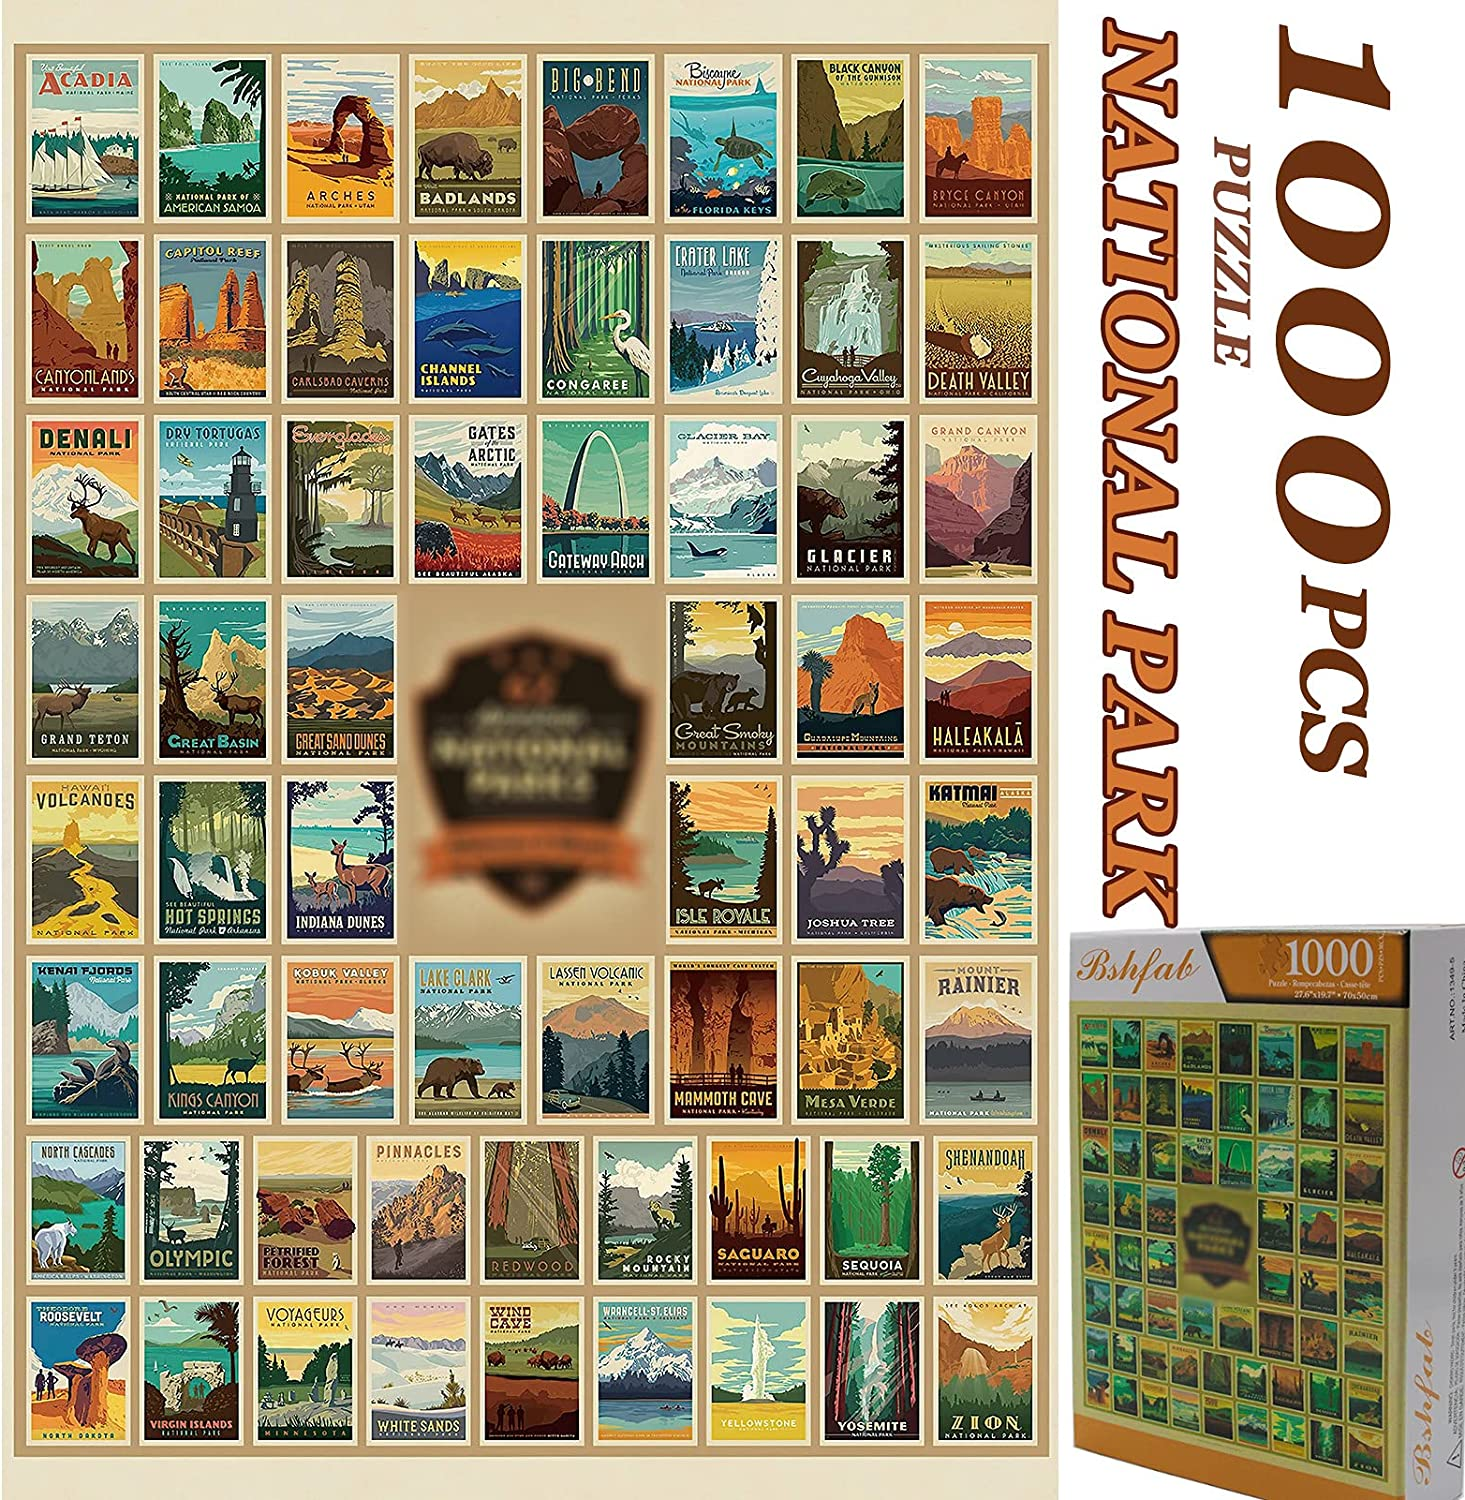 Jigsaw Puzzles for Adults Kids 1000 Piece 27.6x19.7 Inch-Difficult Educational DIY Toy Puzzle Games for Women Men Teens Seniors-Fun Families Indoor Activity-Large Landscape Art Home Decor Gifts-Park